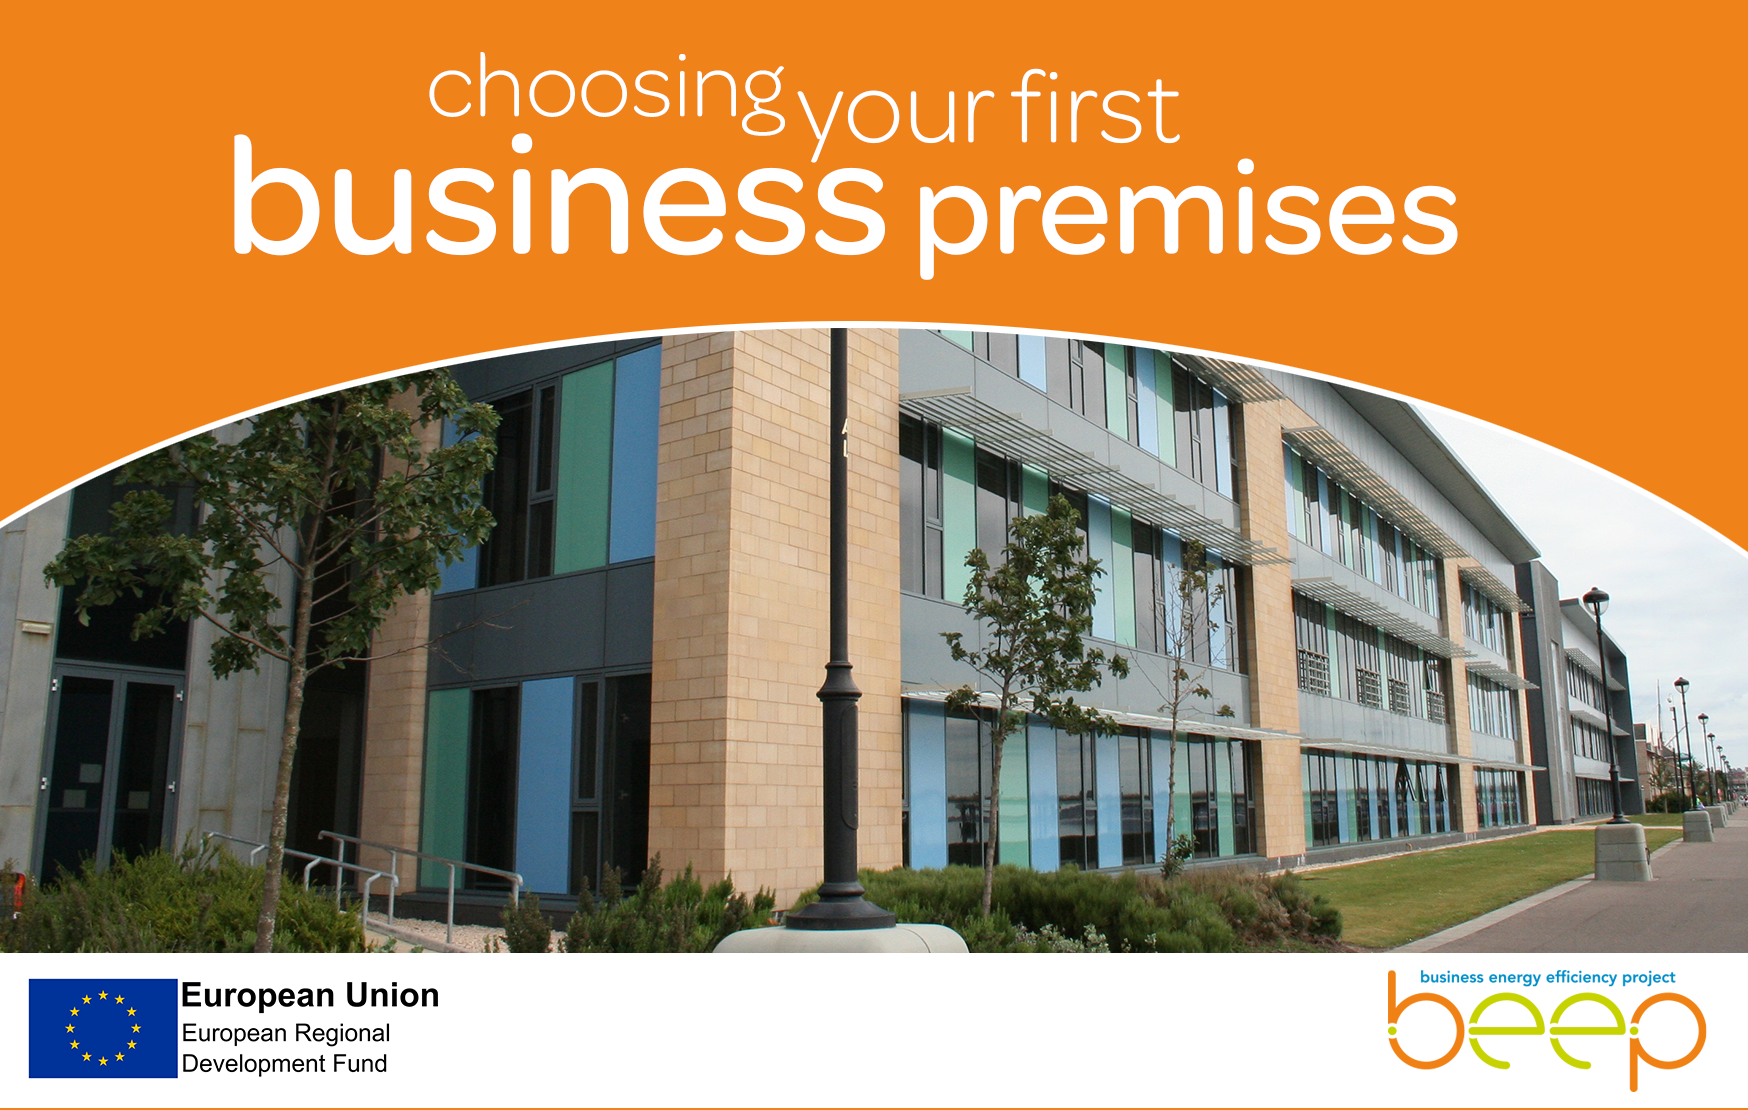 modern office complex exterior overlay text says choosing your first business premises